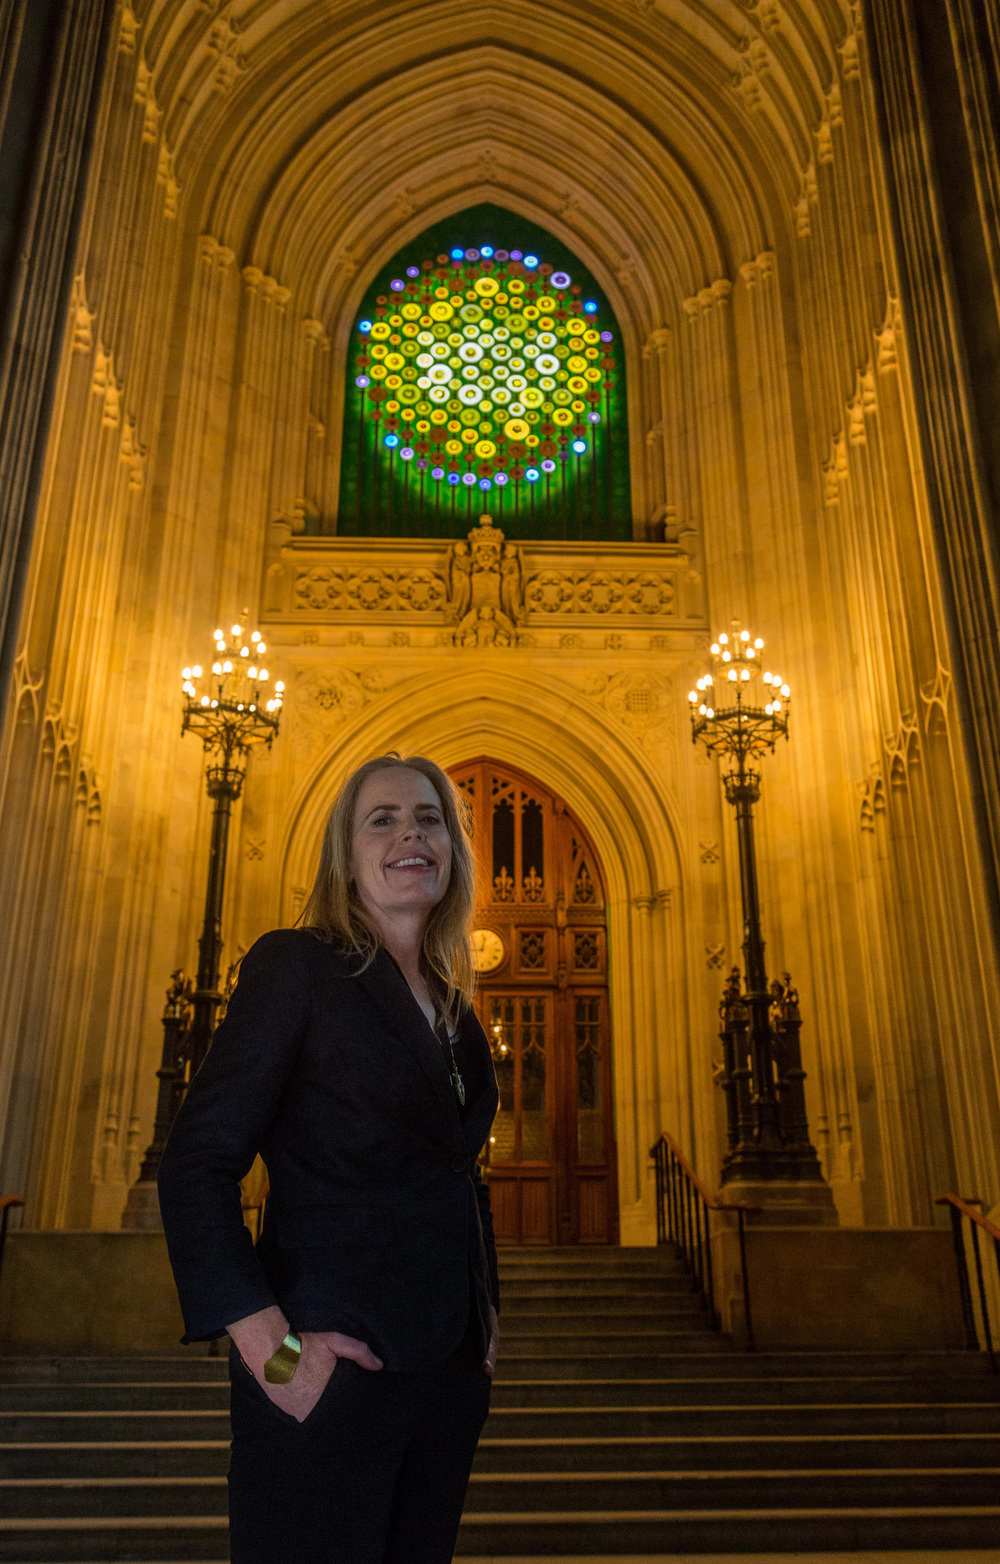 New Dawn, a contemporary sculptural light installation celebrating Women's Suffrage in the Houses of Parliament, London by Mary Branson.